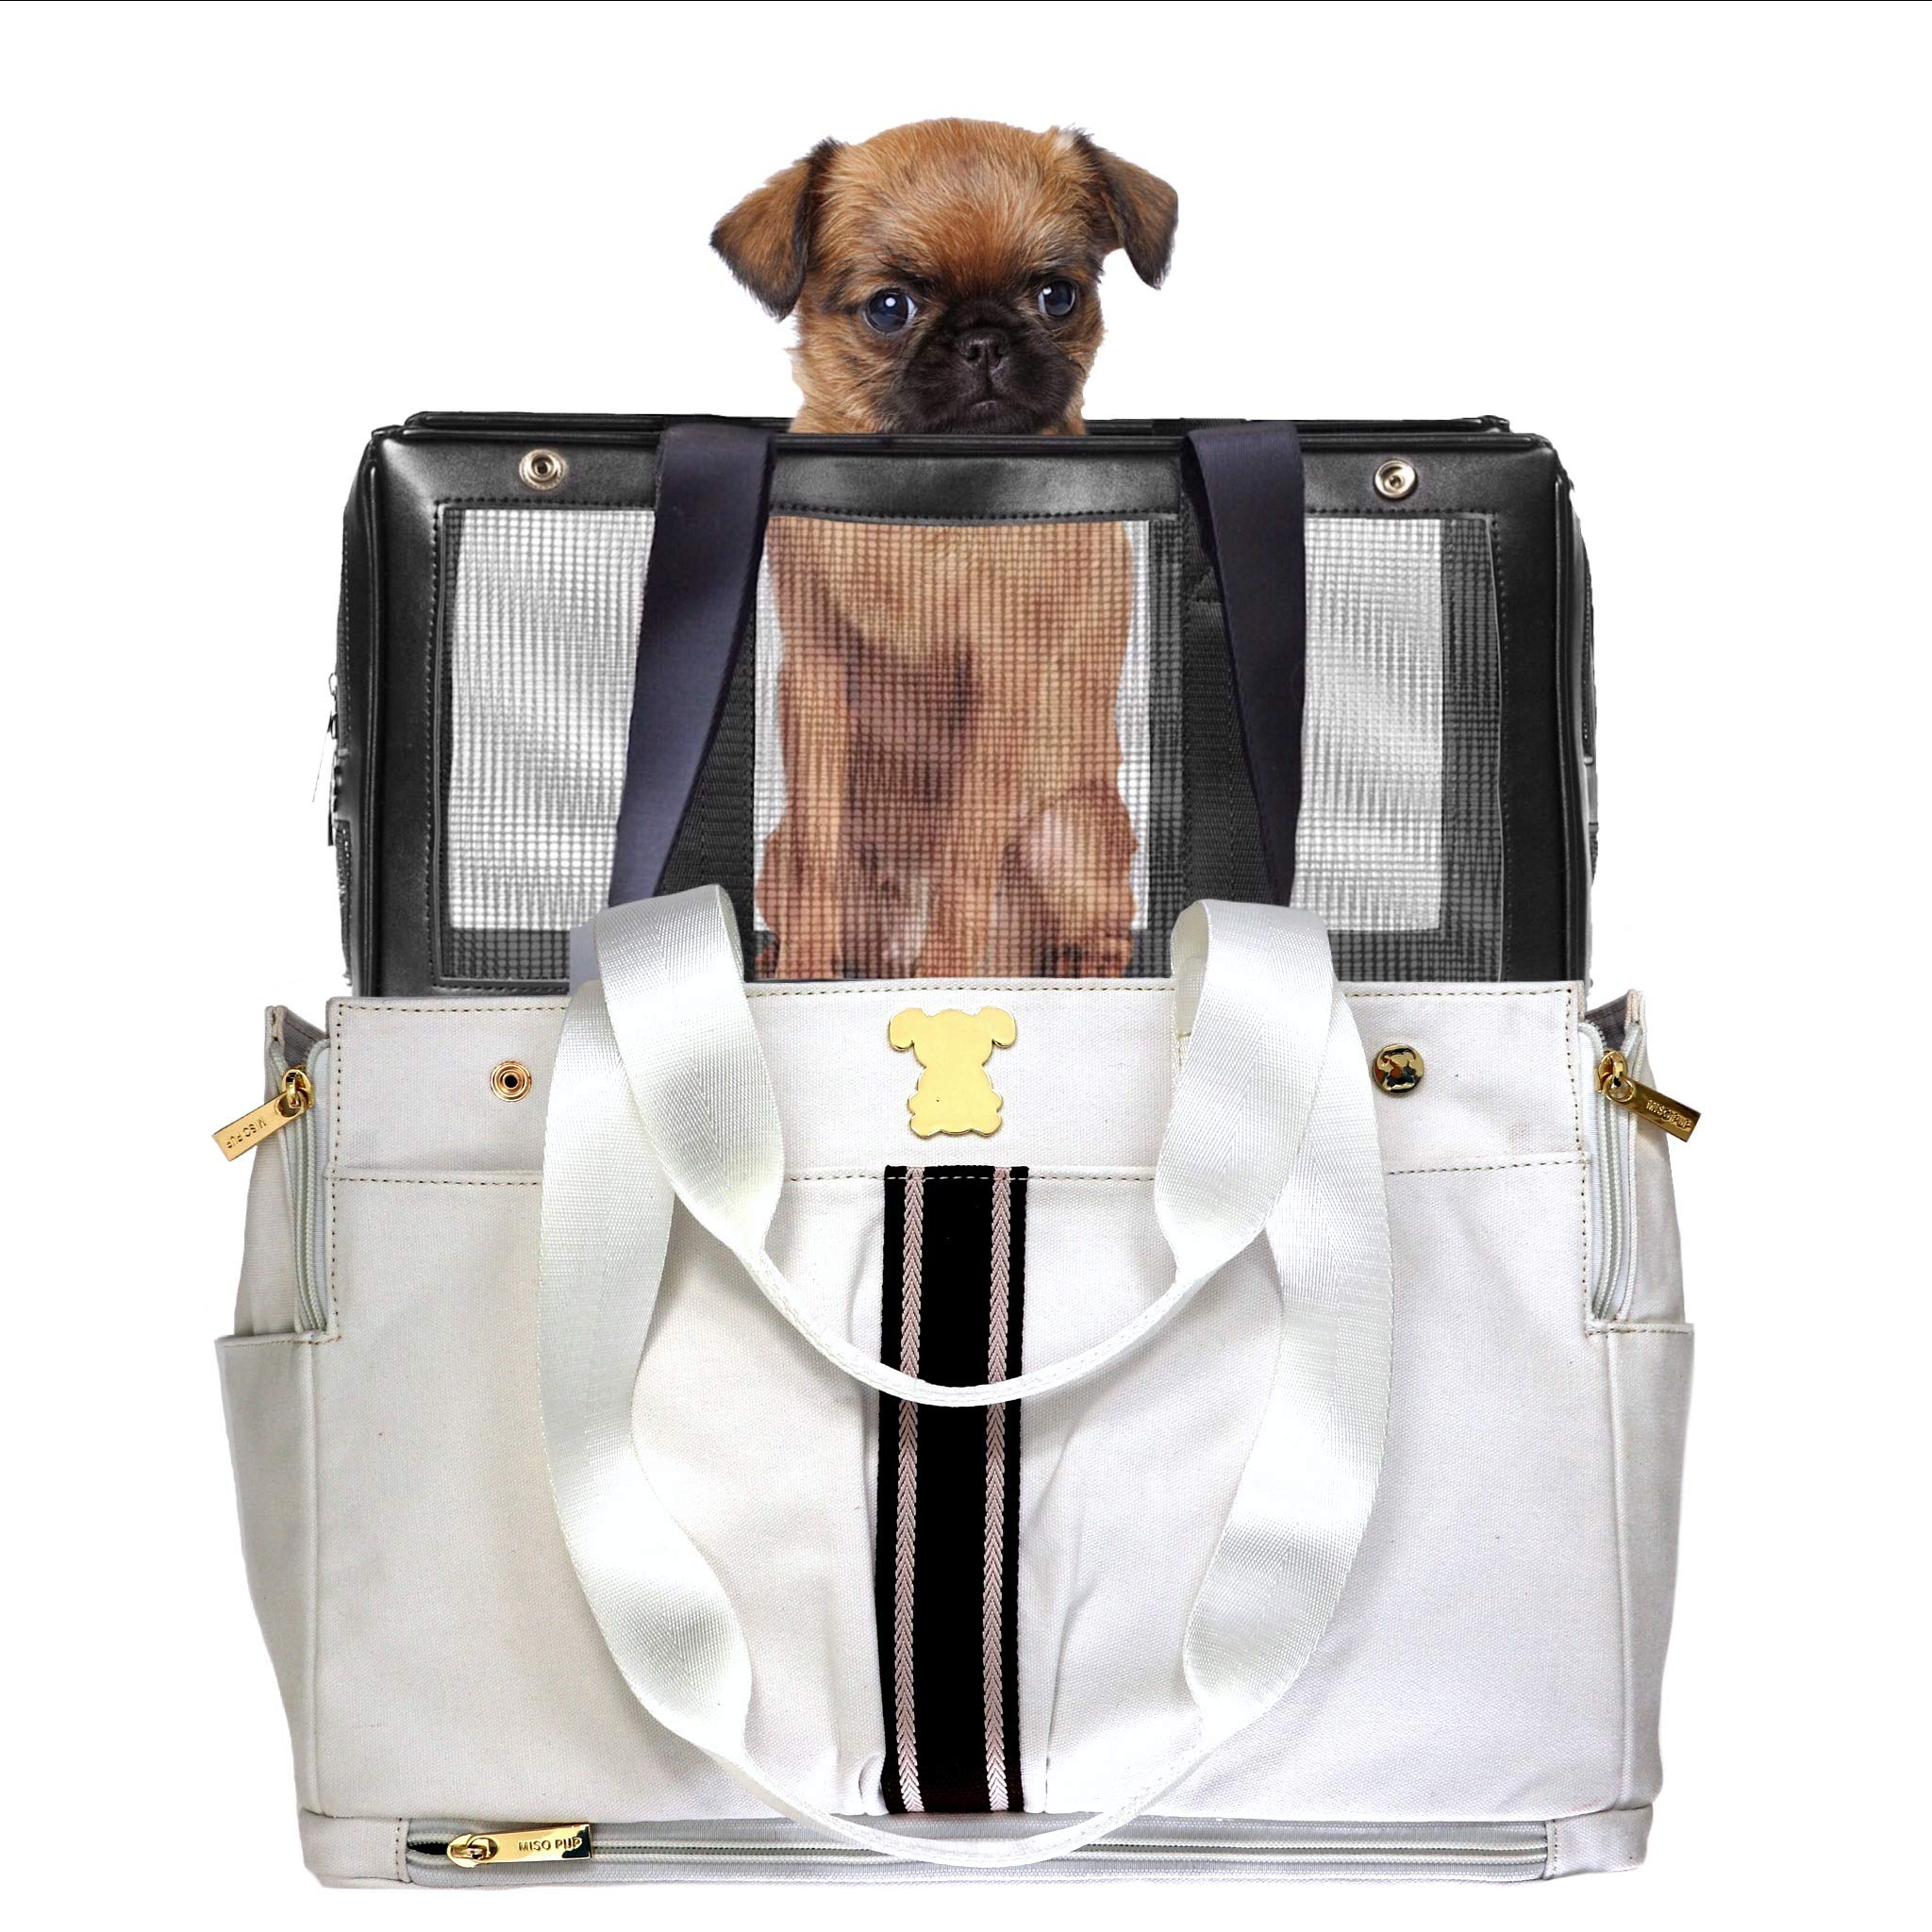 MISO PUP White Canvas Brown Stripe- Interchangeable Airline Approved Pet Carrier Combo with Pockets for Small Dogs (Pet Carrier Base & Shell Tote)